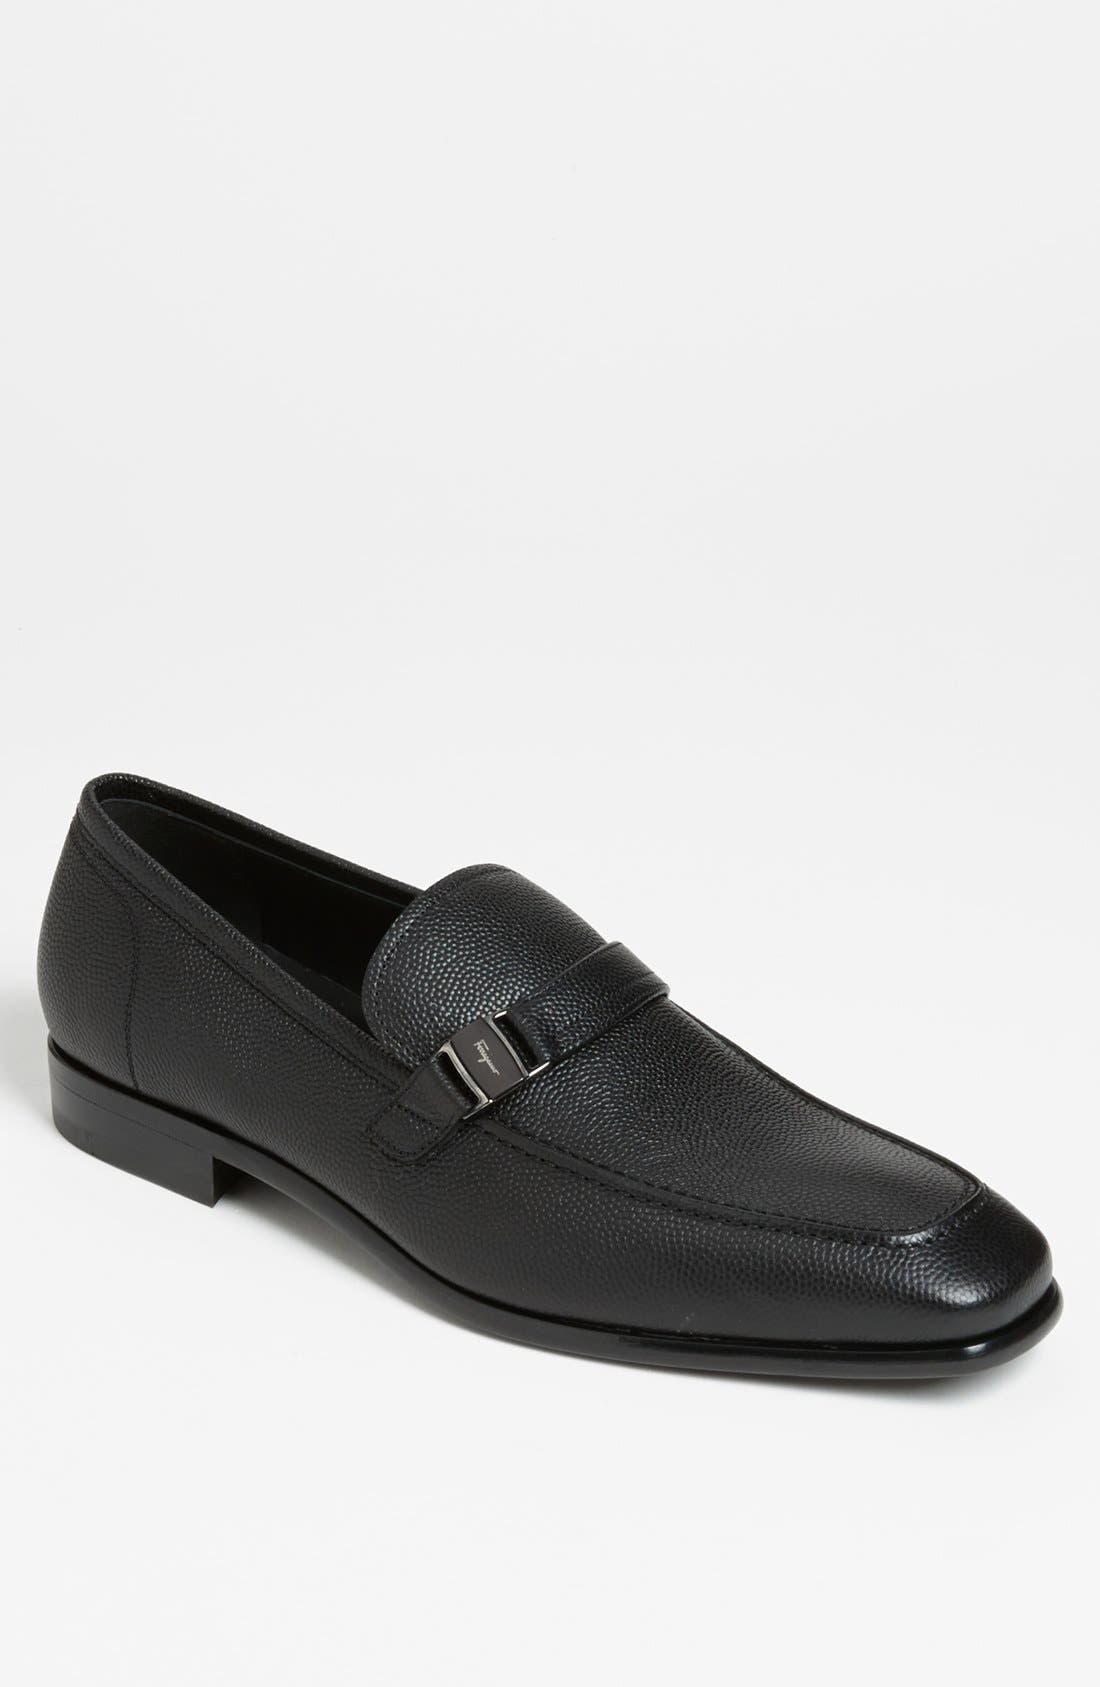 Alternate Image 1 Selected - Salvatore Ferragamo 'Svezia' Loafer